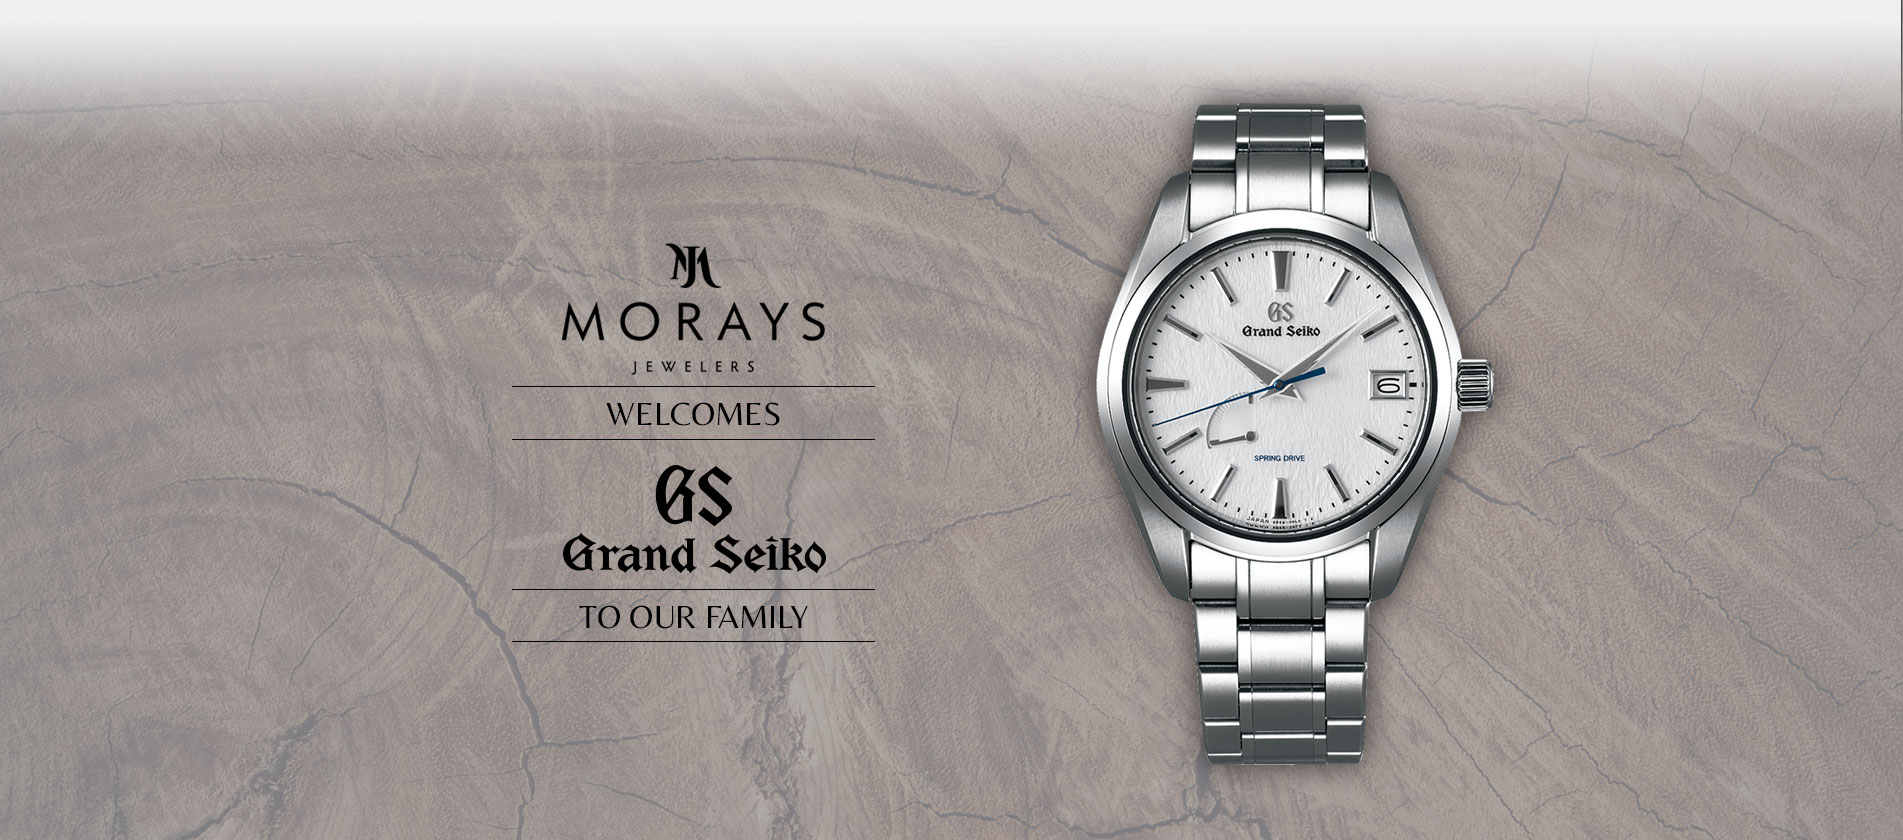 Morays welcomes Grand Seiko to the family